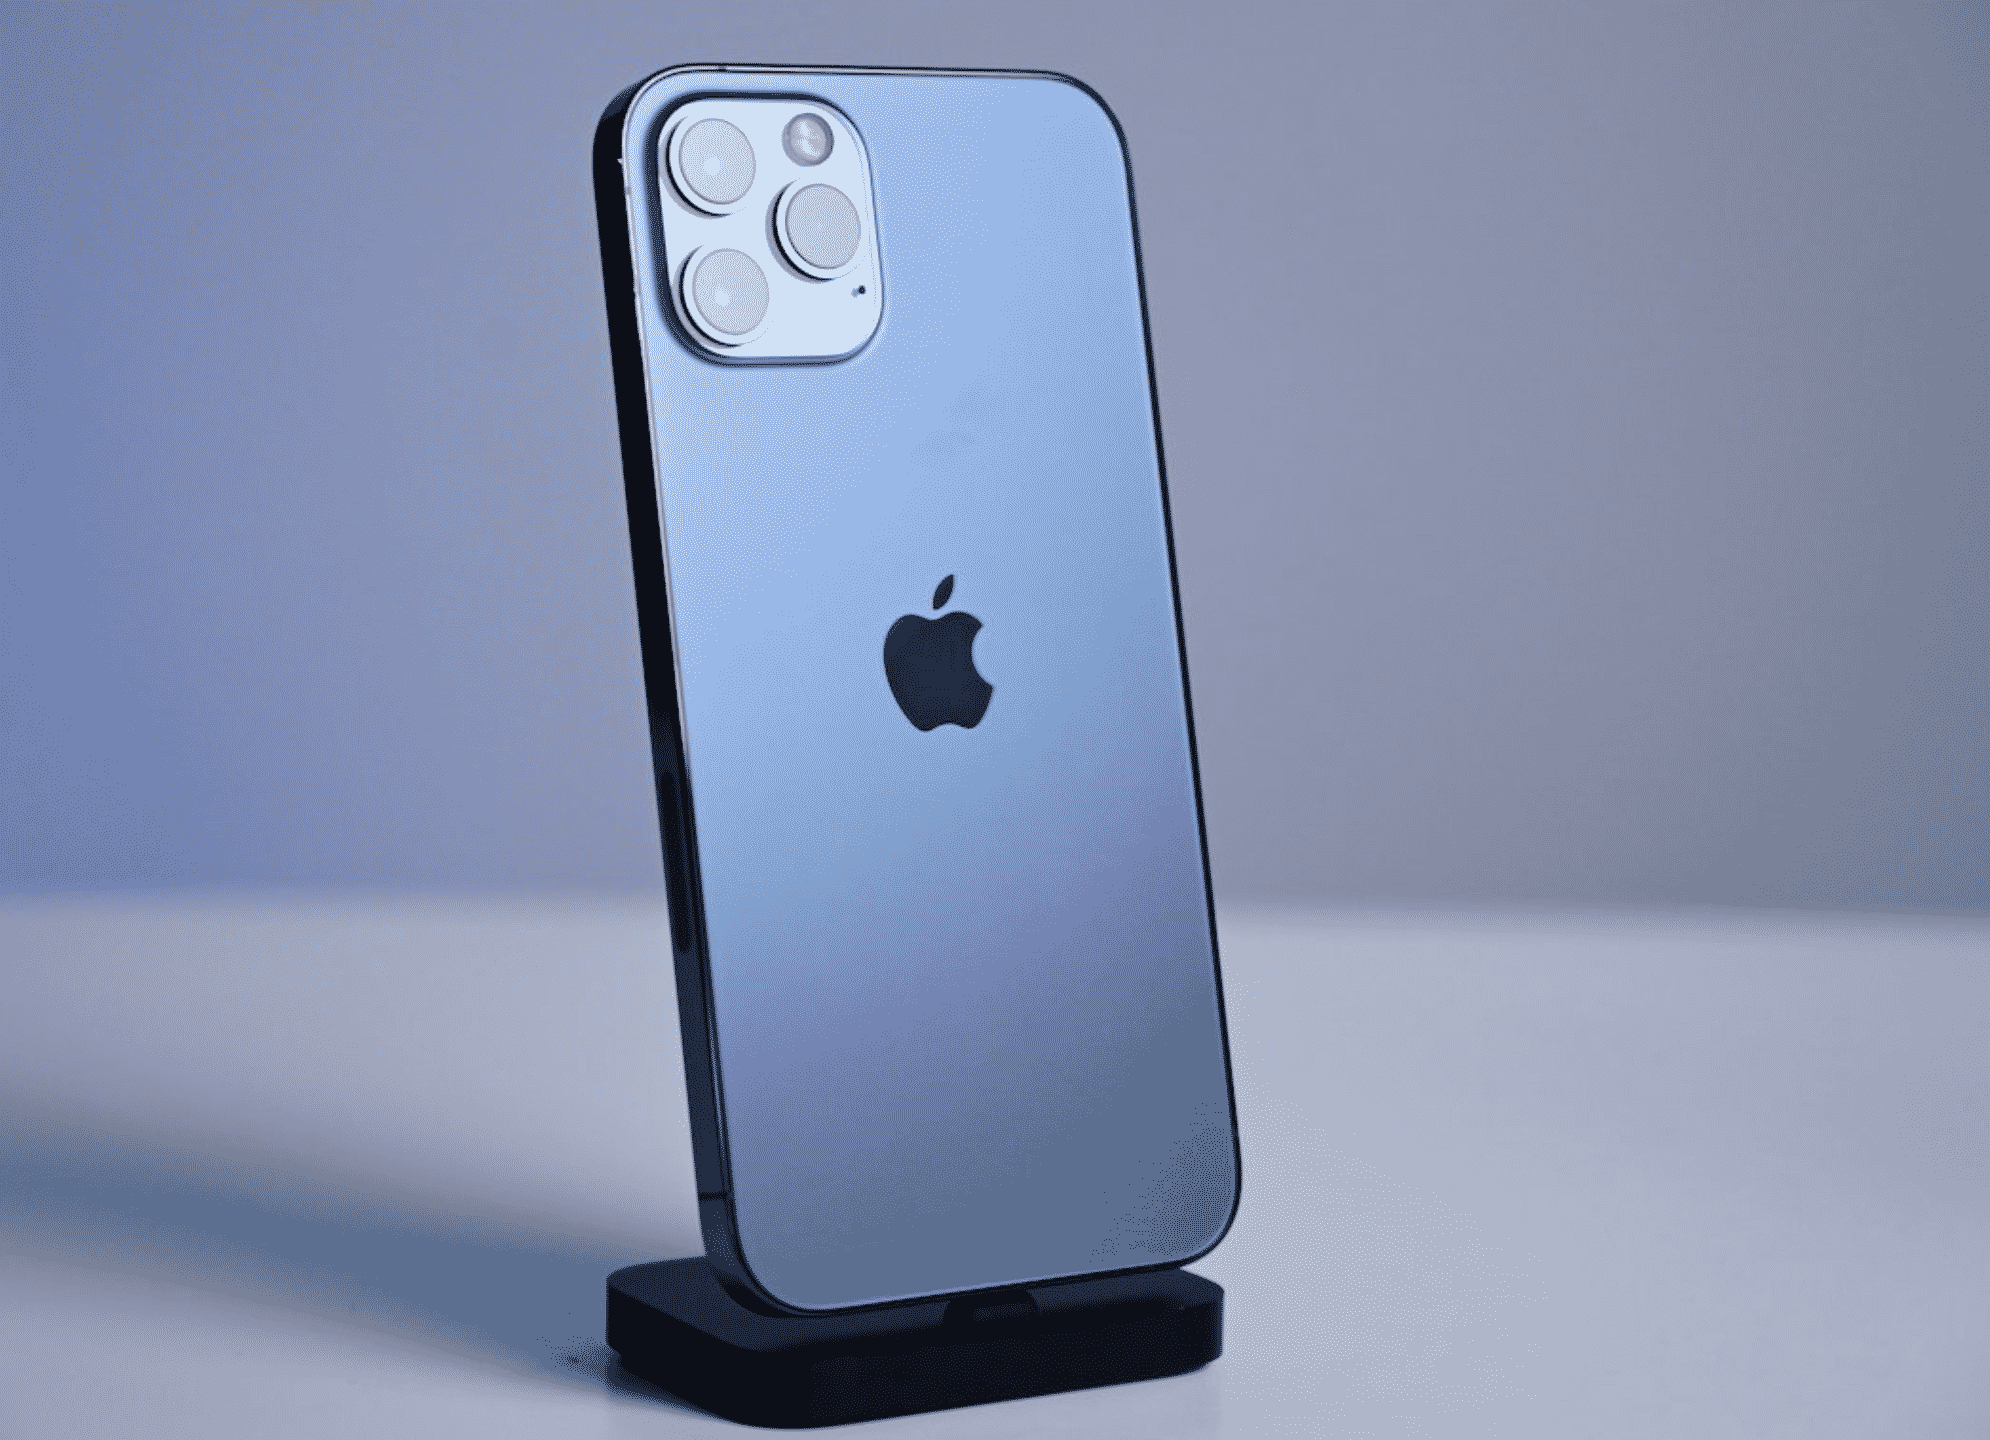 iPhone 12 Pro Max rated 'most popular 5G smartphone' in the US